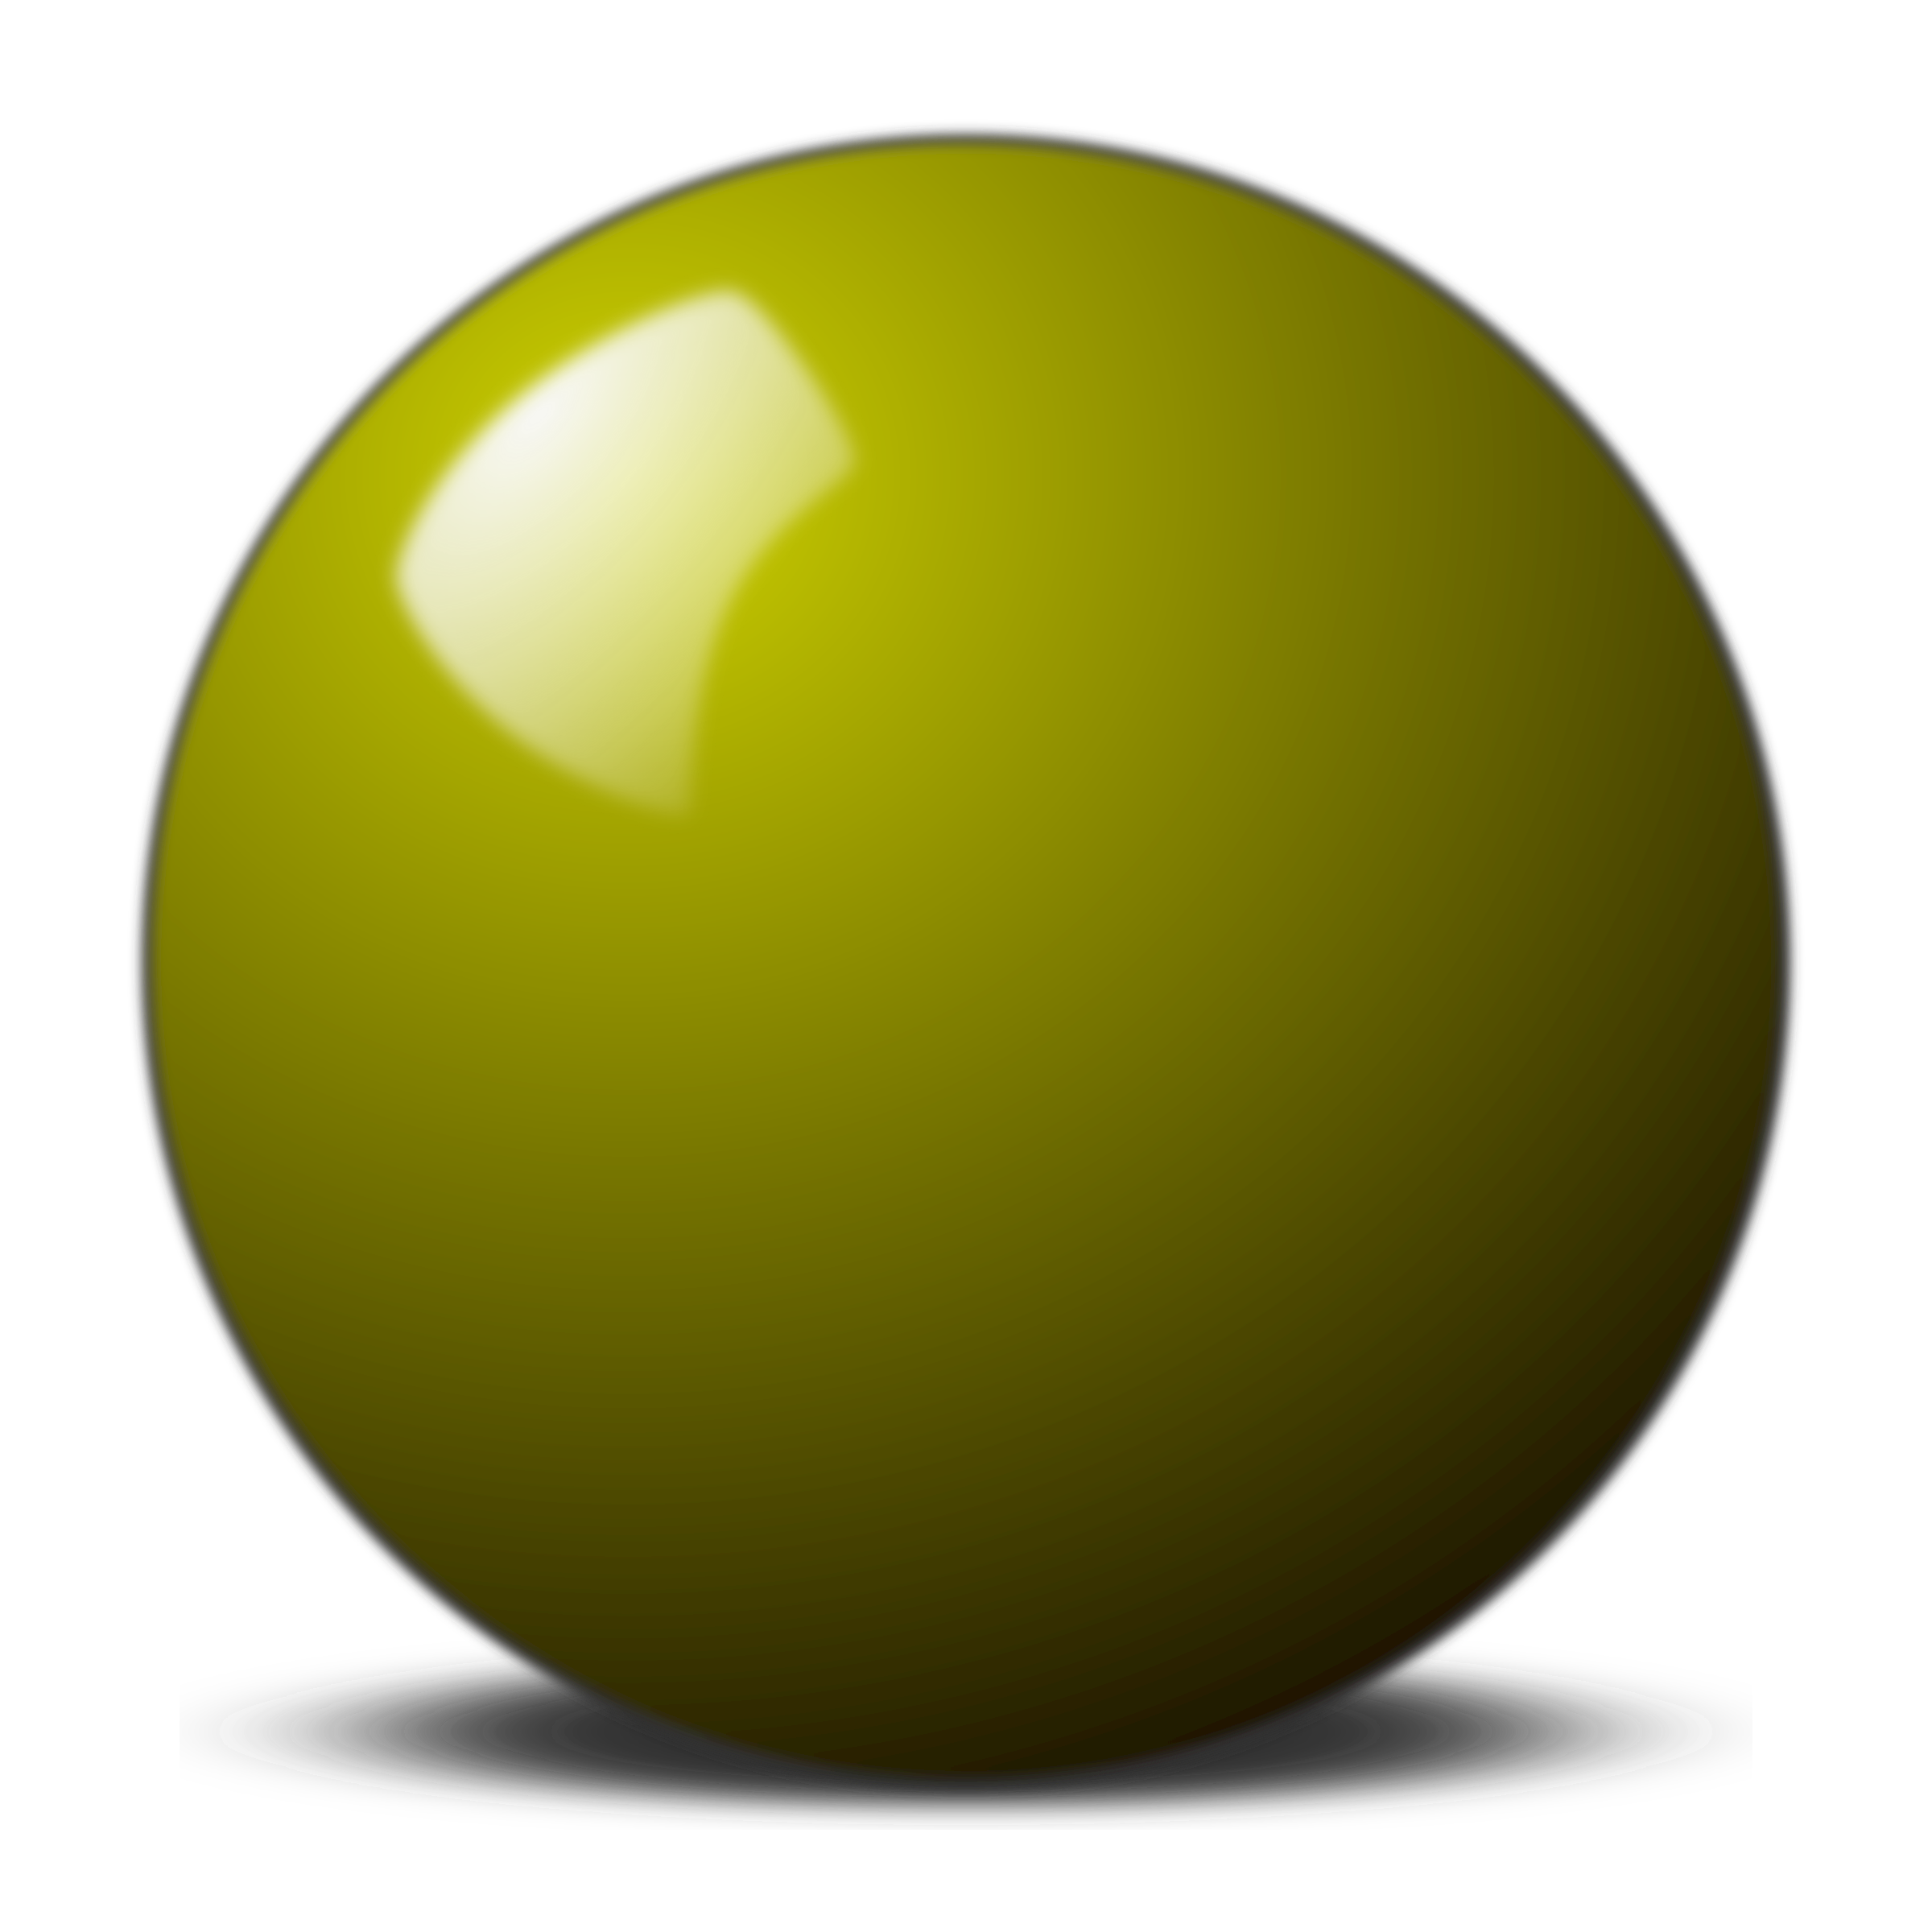 Sphere clipart yellow. Snooker ball big image